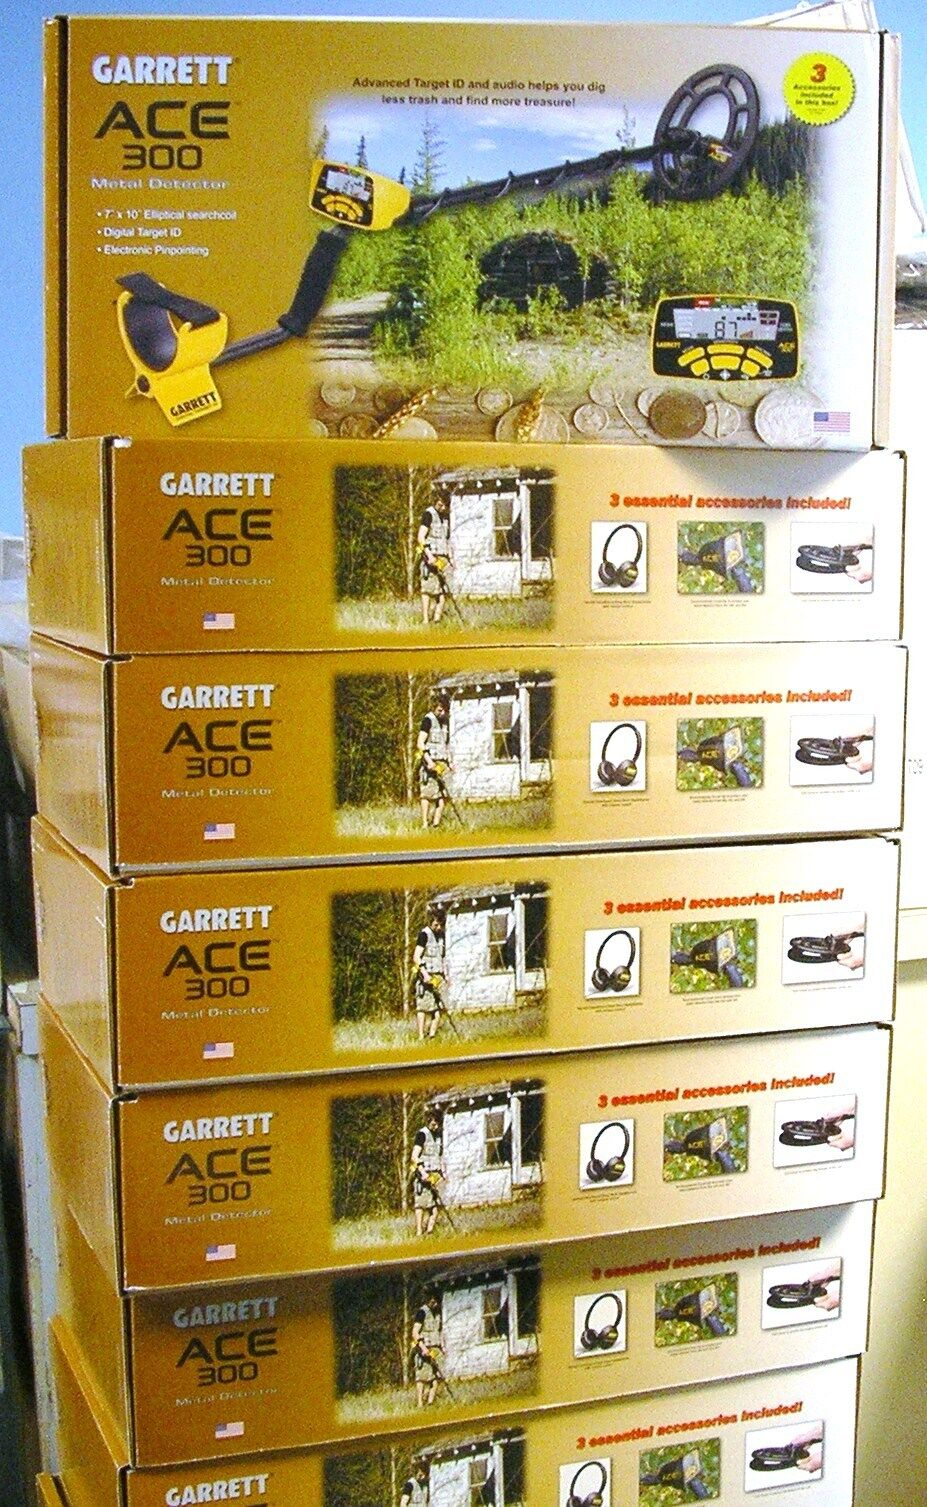 GARRETT ACE 300  FREE INTRODUCTORY PACK AND FREE SHIPPING  FREE ITEMS